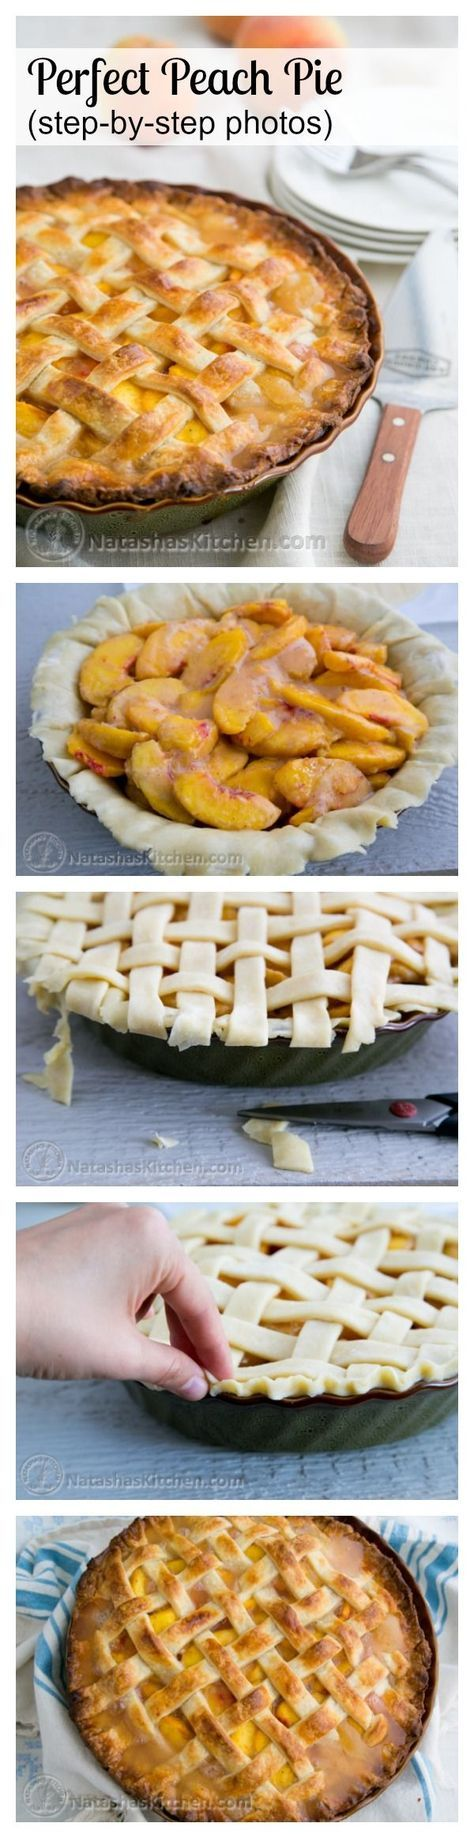 You have to try this deep dish peach pie! It's wonderful and not overly sweet. Keep this one for peach season! @natashaskitchen